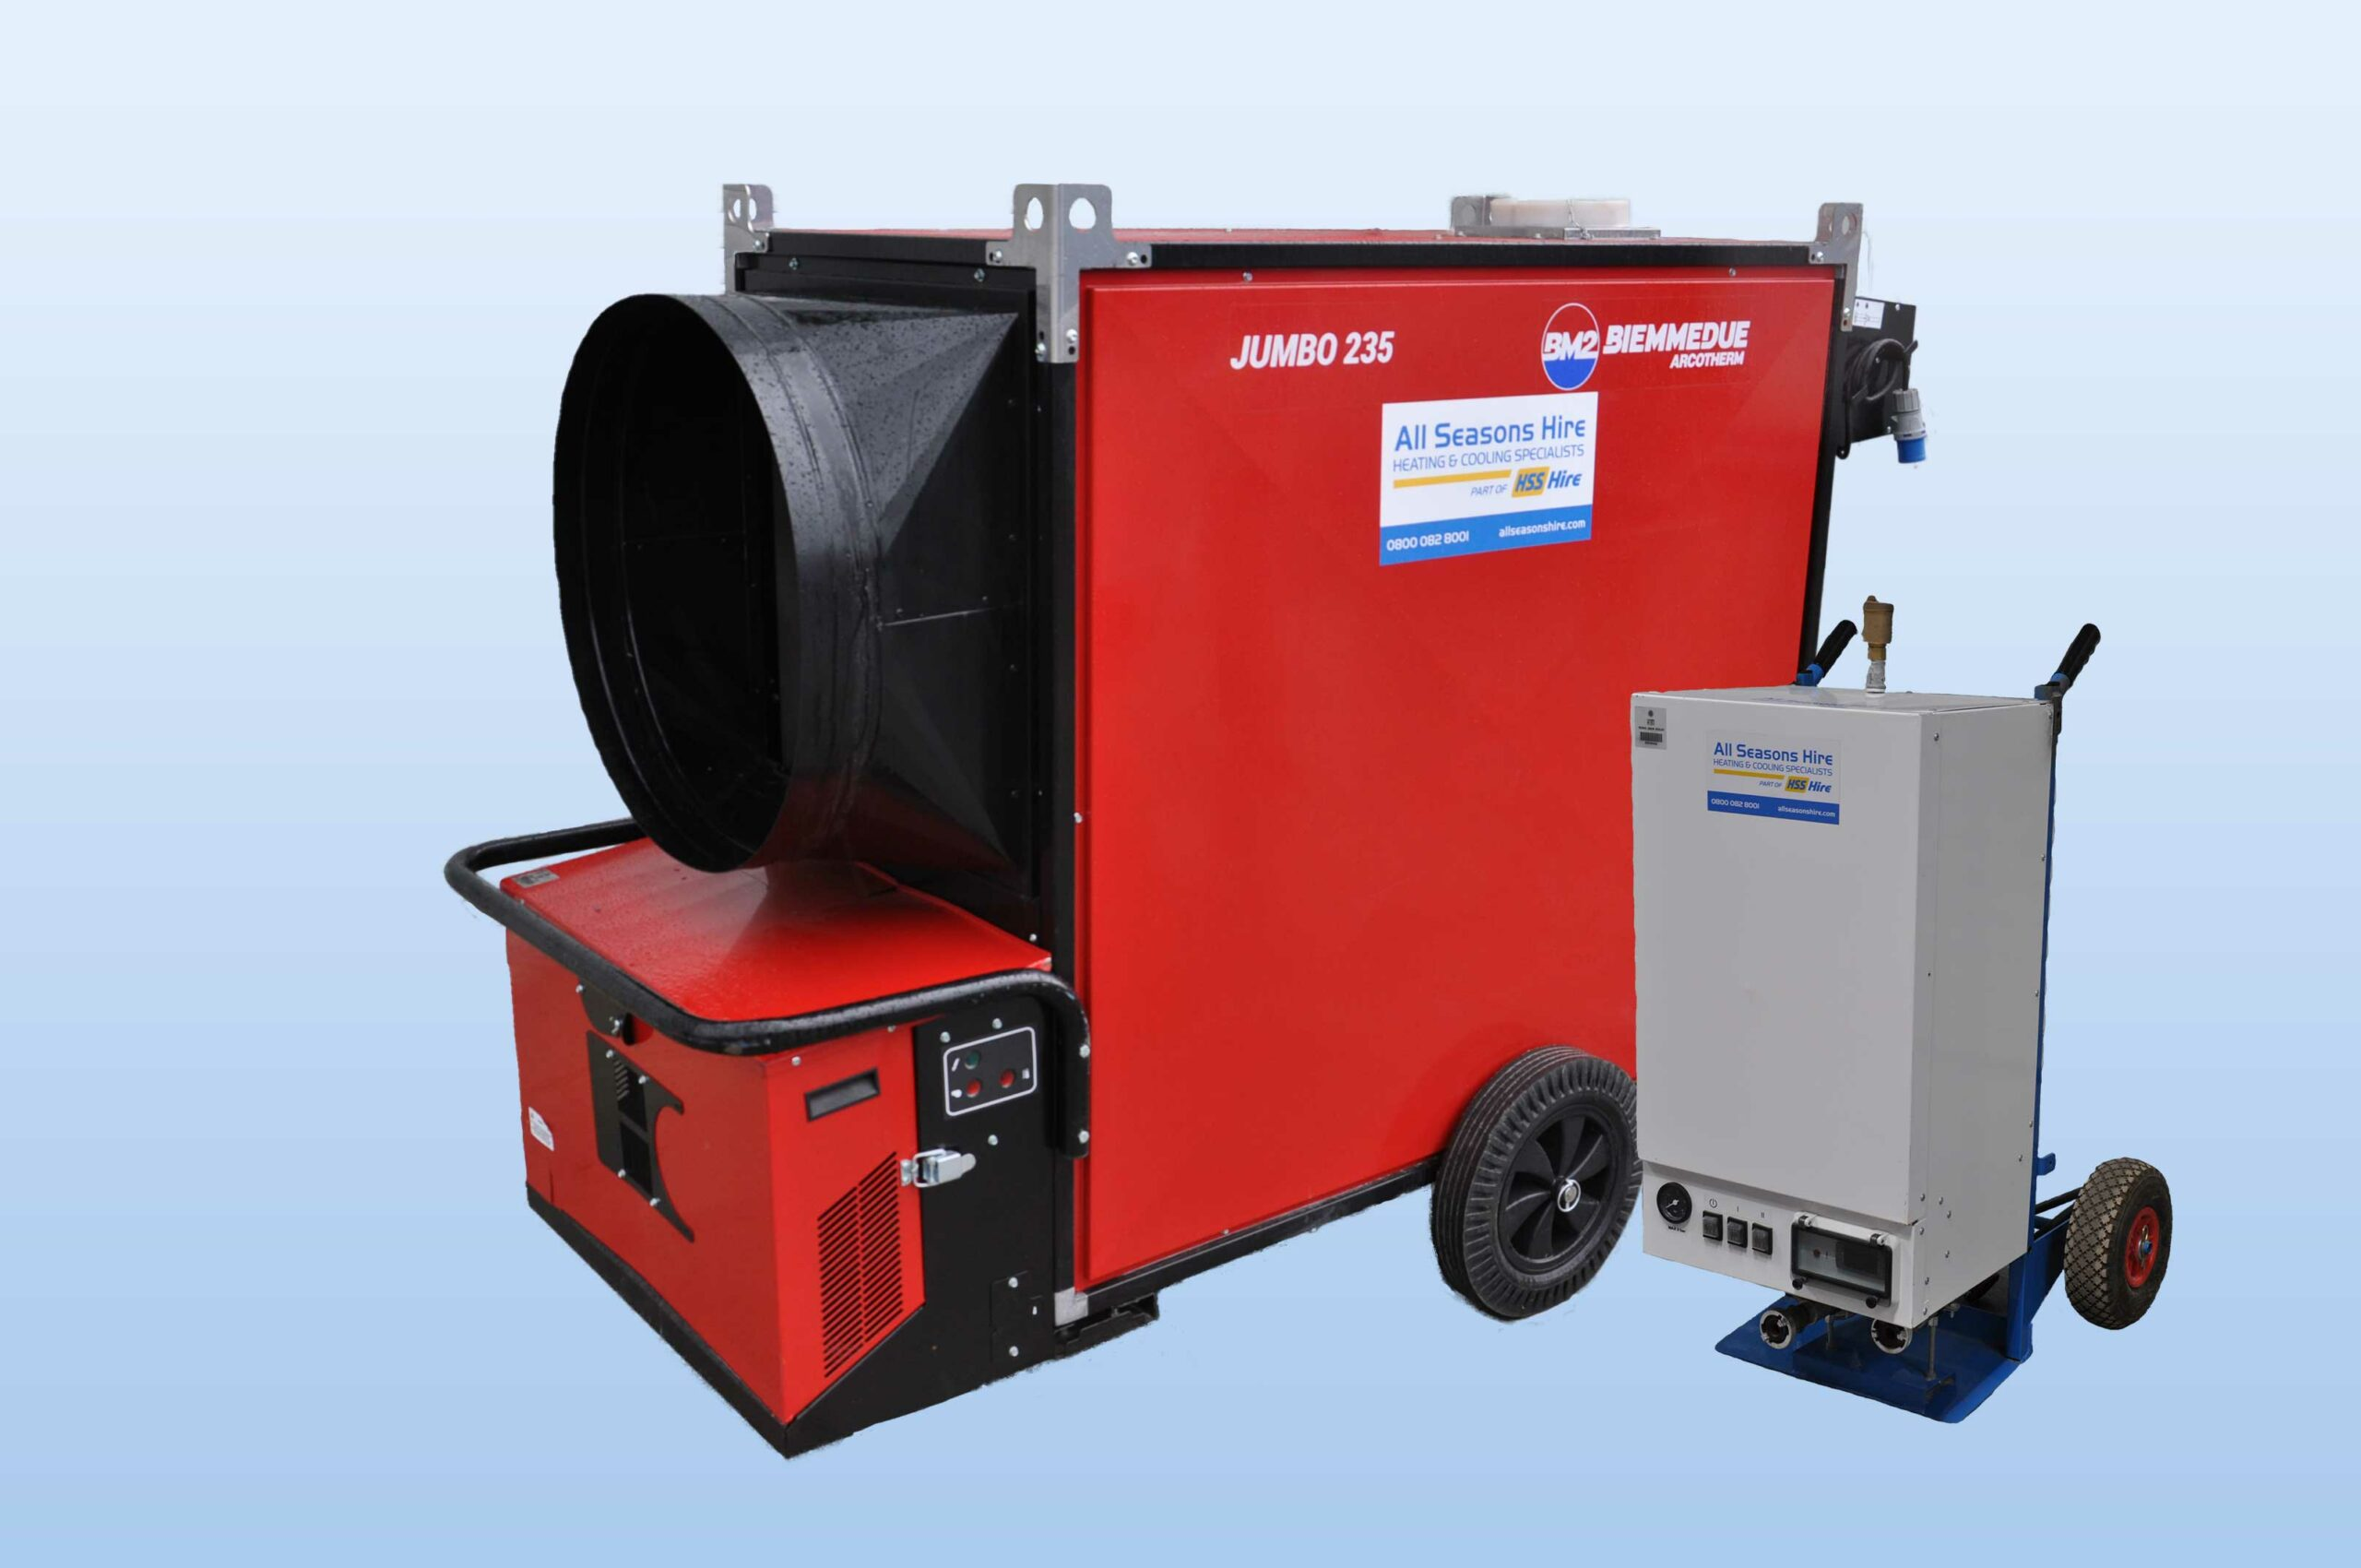 Jumbo_235-and-22kw_boiler_blue_gradient_background